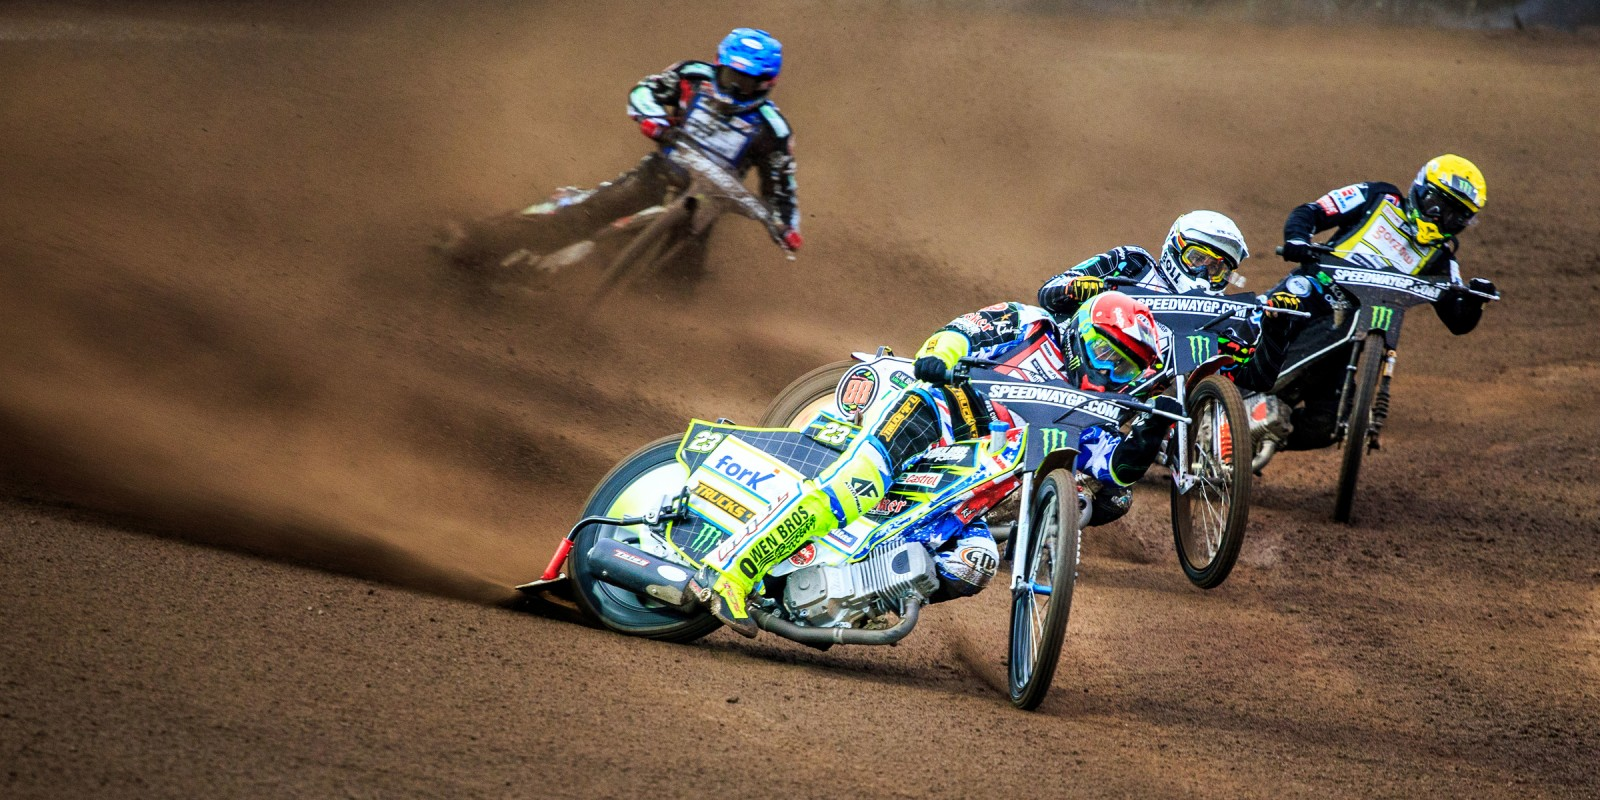 Images of Chris Holder on his way to 10pts in the 2015 Swedish SGP